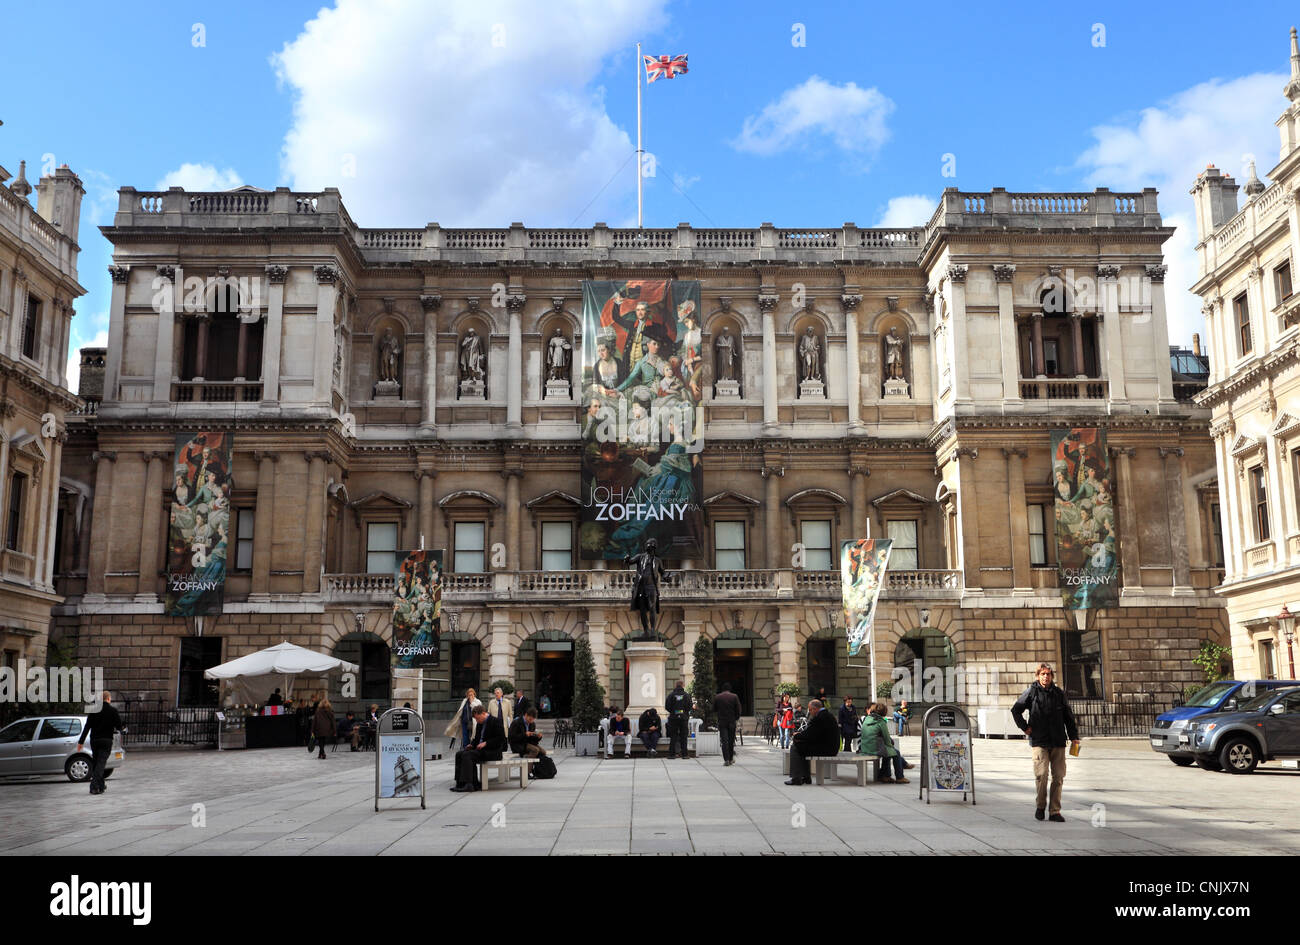 The Royal Acadamy Piccadilly London - Stock Image